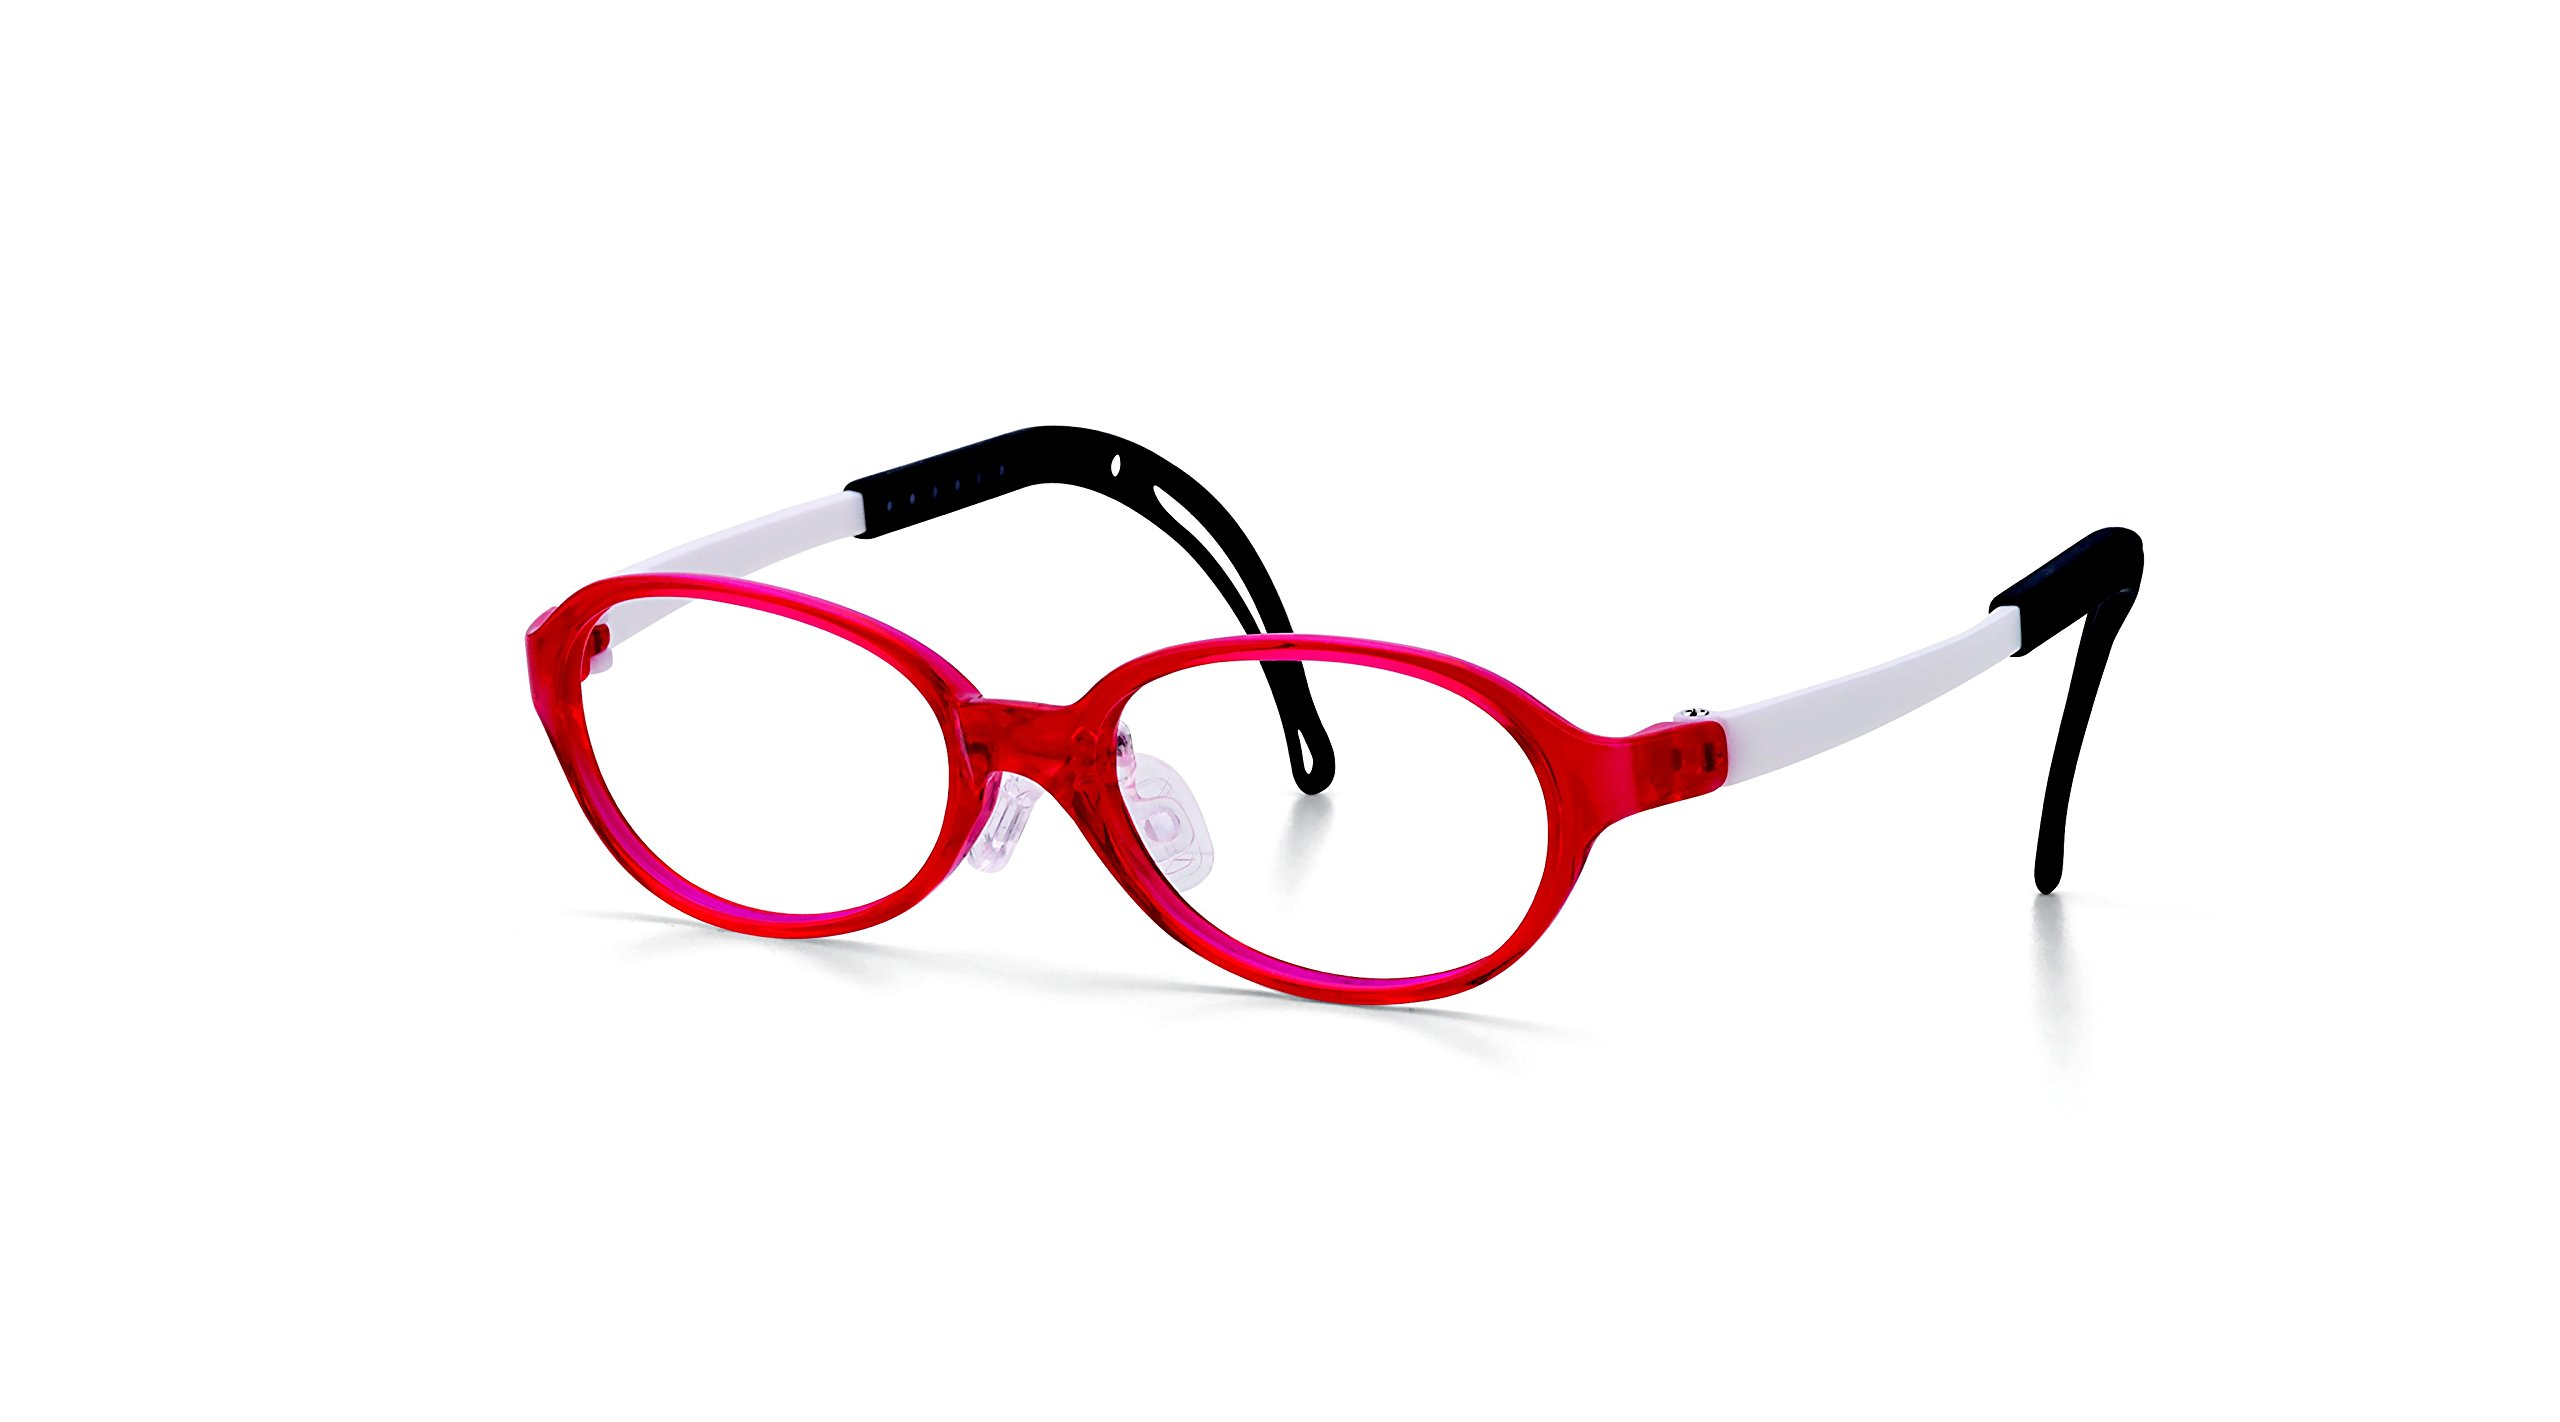 Eyeglass Frames for Kids, TKAC15-40, Red, Light Weight, Comfortable Material, Highly Durable, Flexible, with Adjustable Nose Pad & Ear Tip, Shape intelligence and Resilience, TKAC14-45